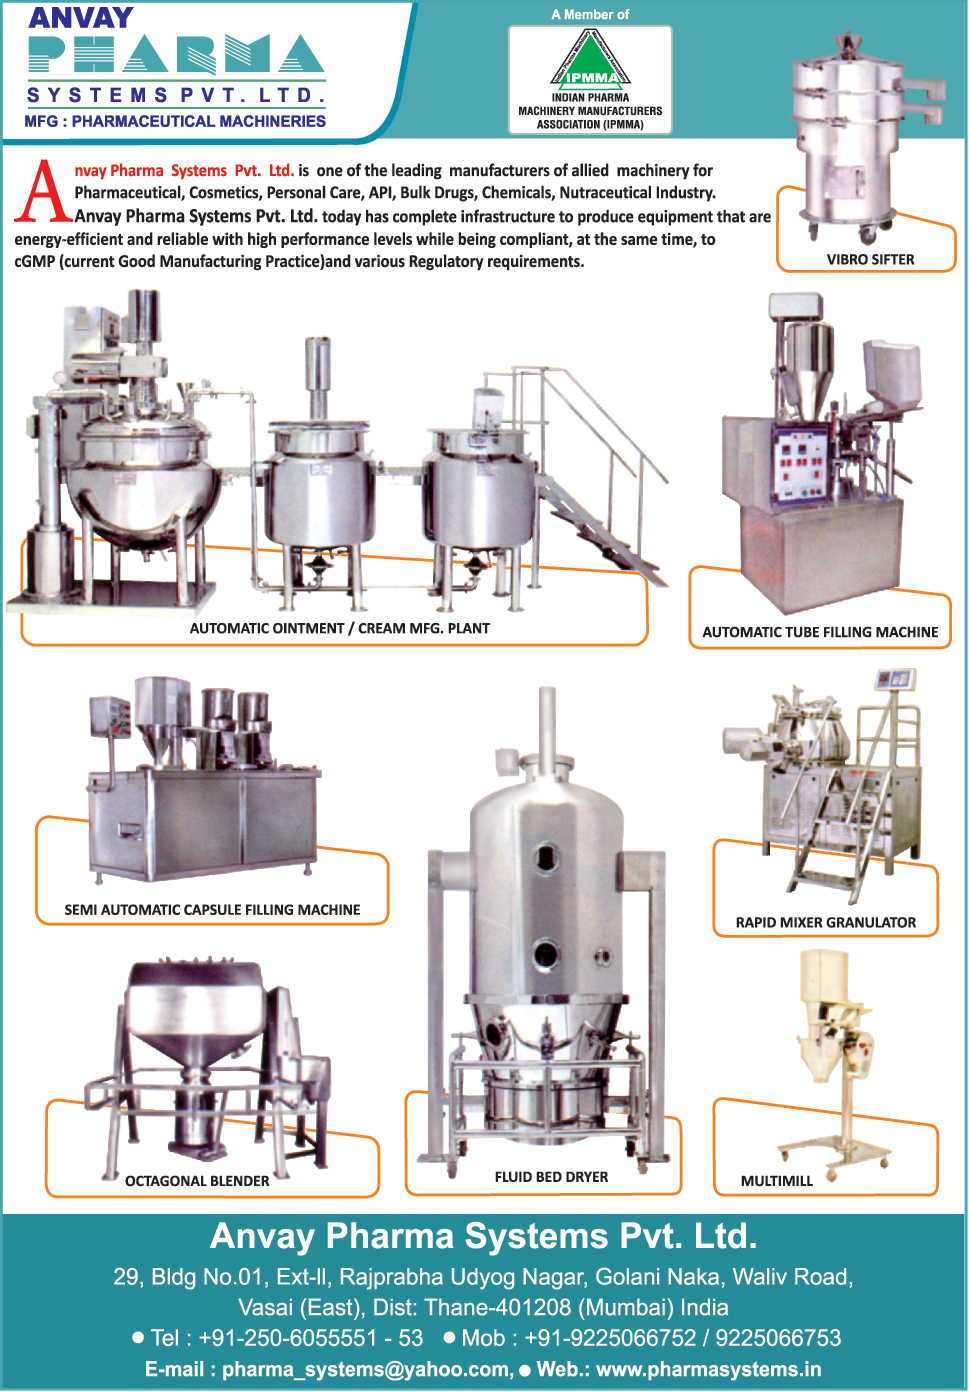 Automatic Ointment Manufacturing Plants, Automatic Cream Manufacturing Plants, Automatic Tube Filling Machines, Semi Automatic Capsule Filling Machines, Rapid Mixer Granulators, Octagonal Blenders, Fluid bed Dryers, Muti Mills,